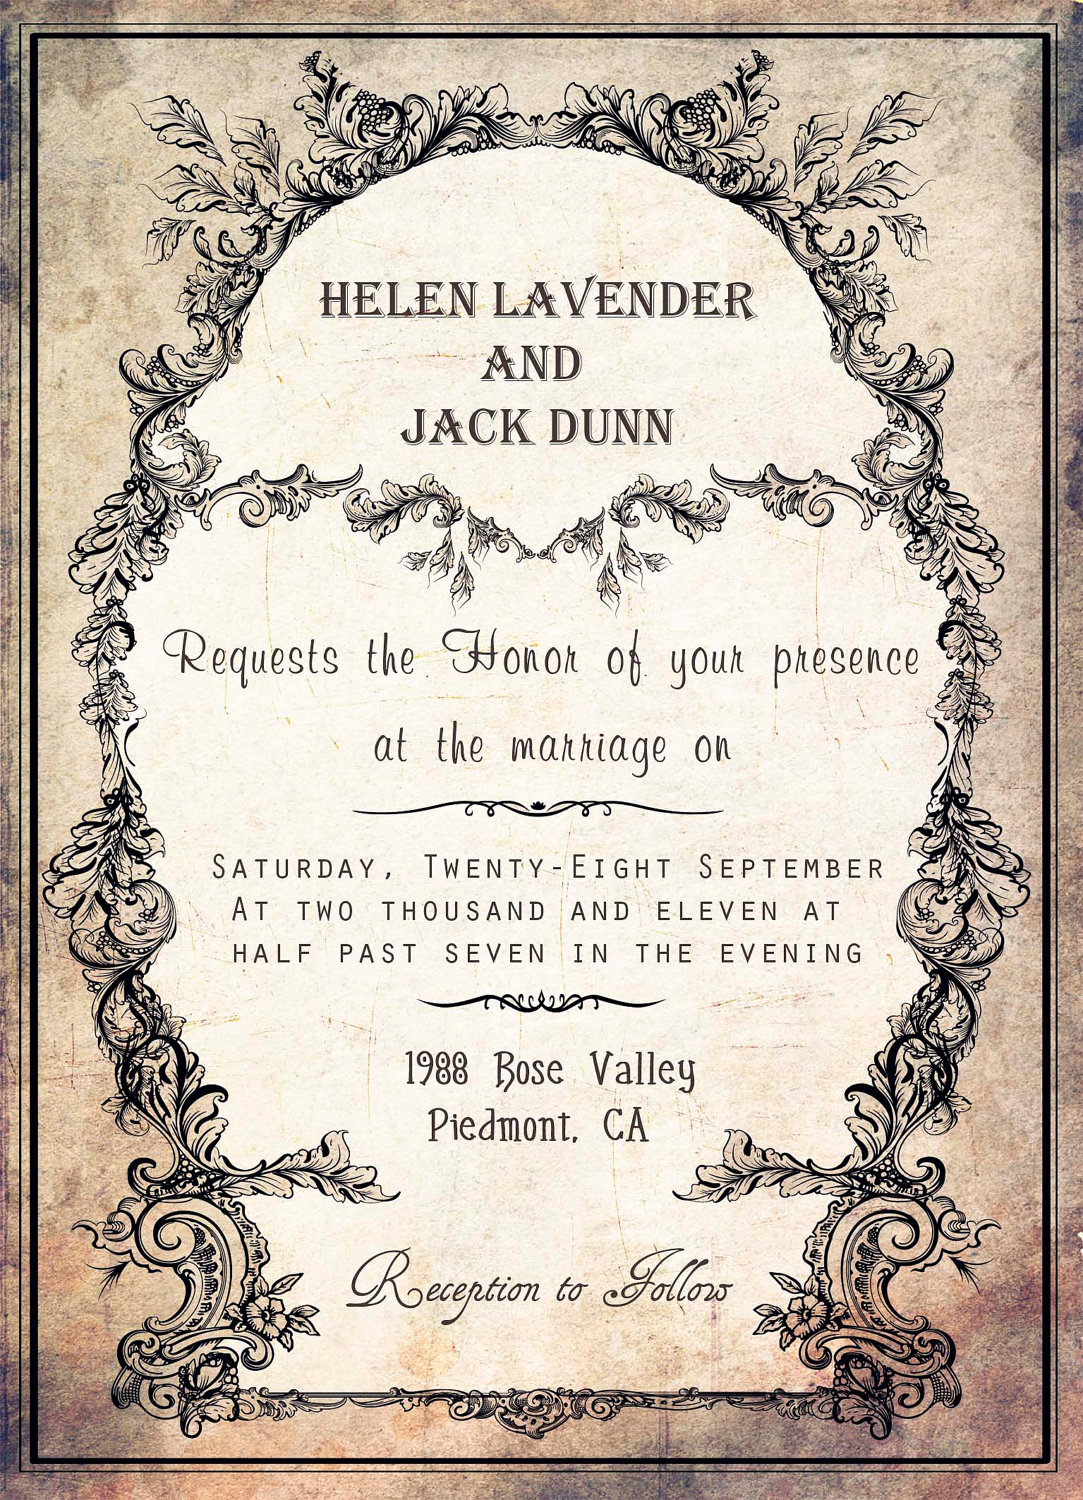 Wedding Invitation Template Peellandfmtk - Wedding invitation templates: wedding invitation template download and print